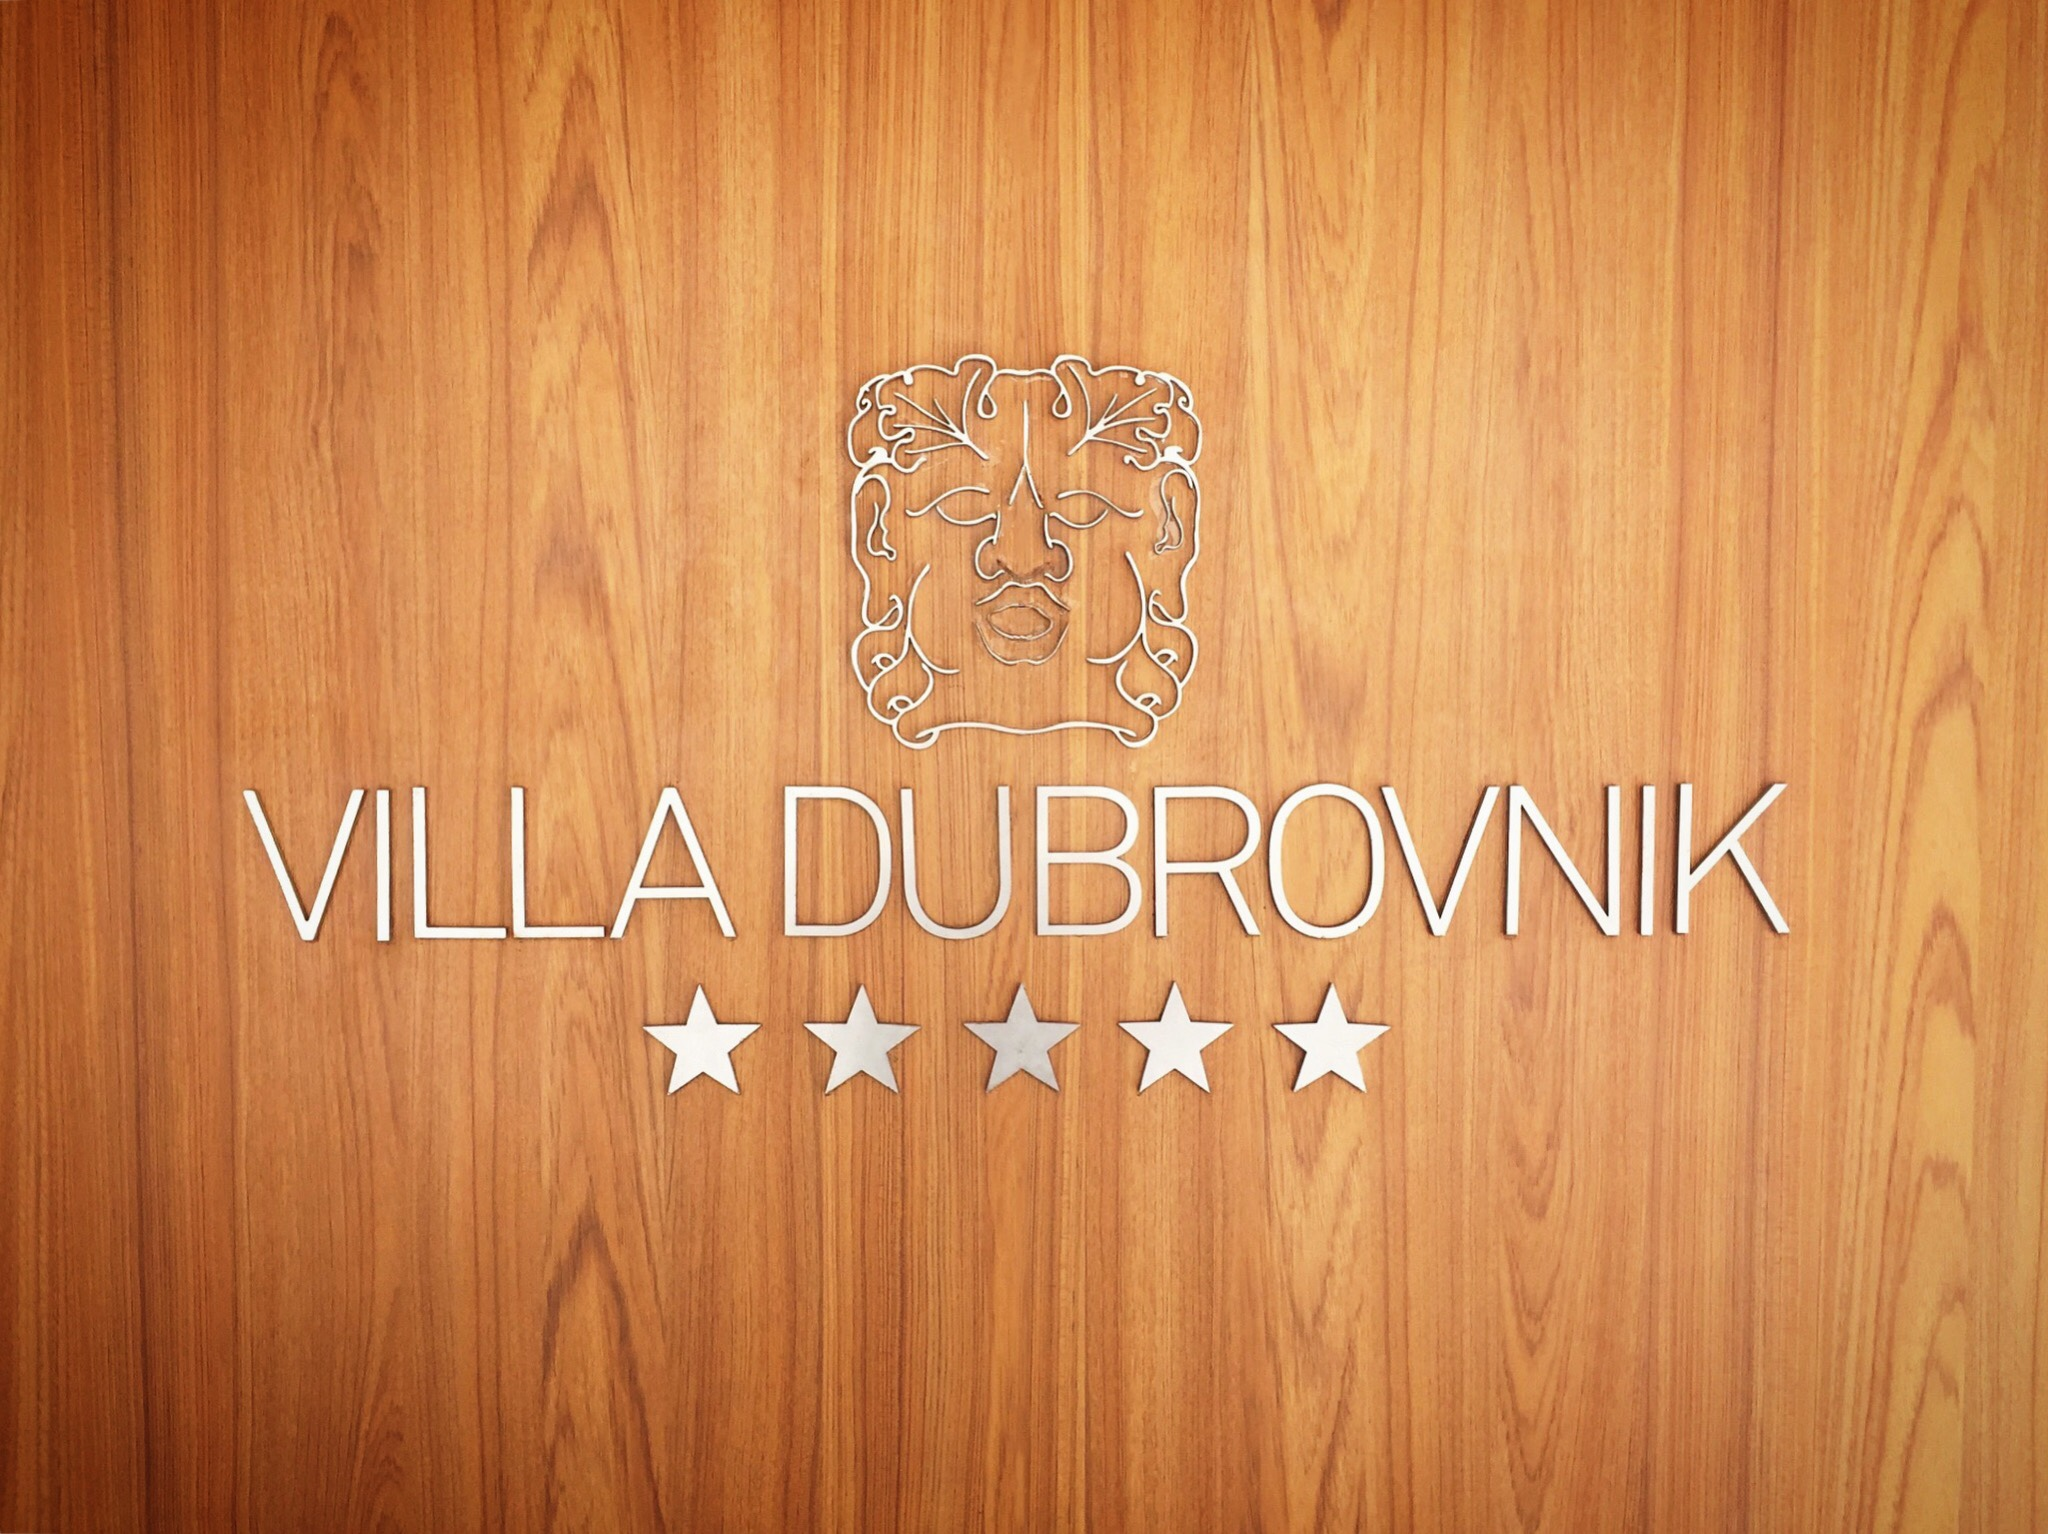 Entrance sign of the hotel villa dubrovnik in coratia. A wooden door with a silver male head outline and five metal stars.